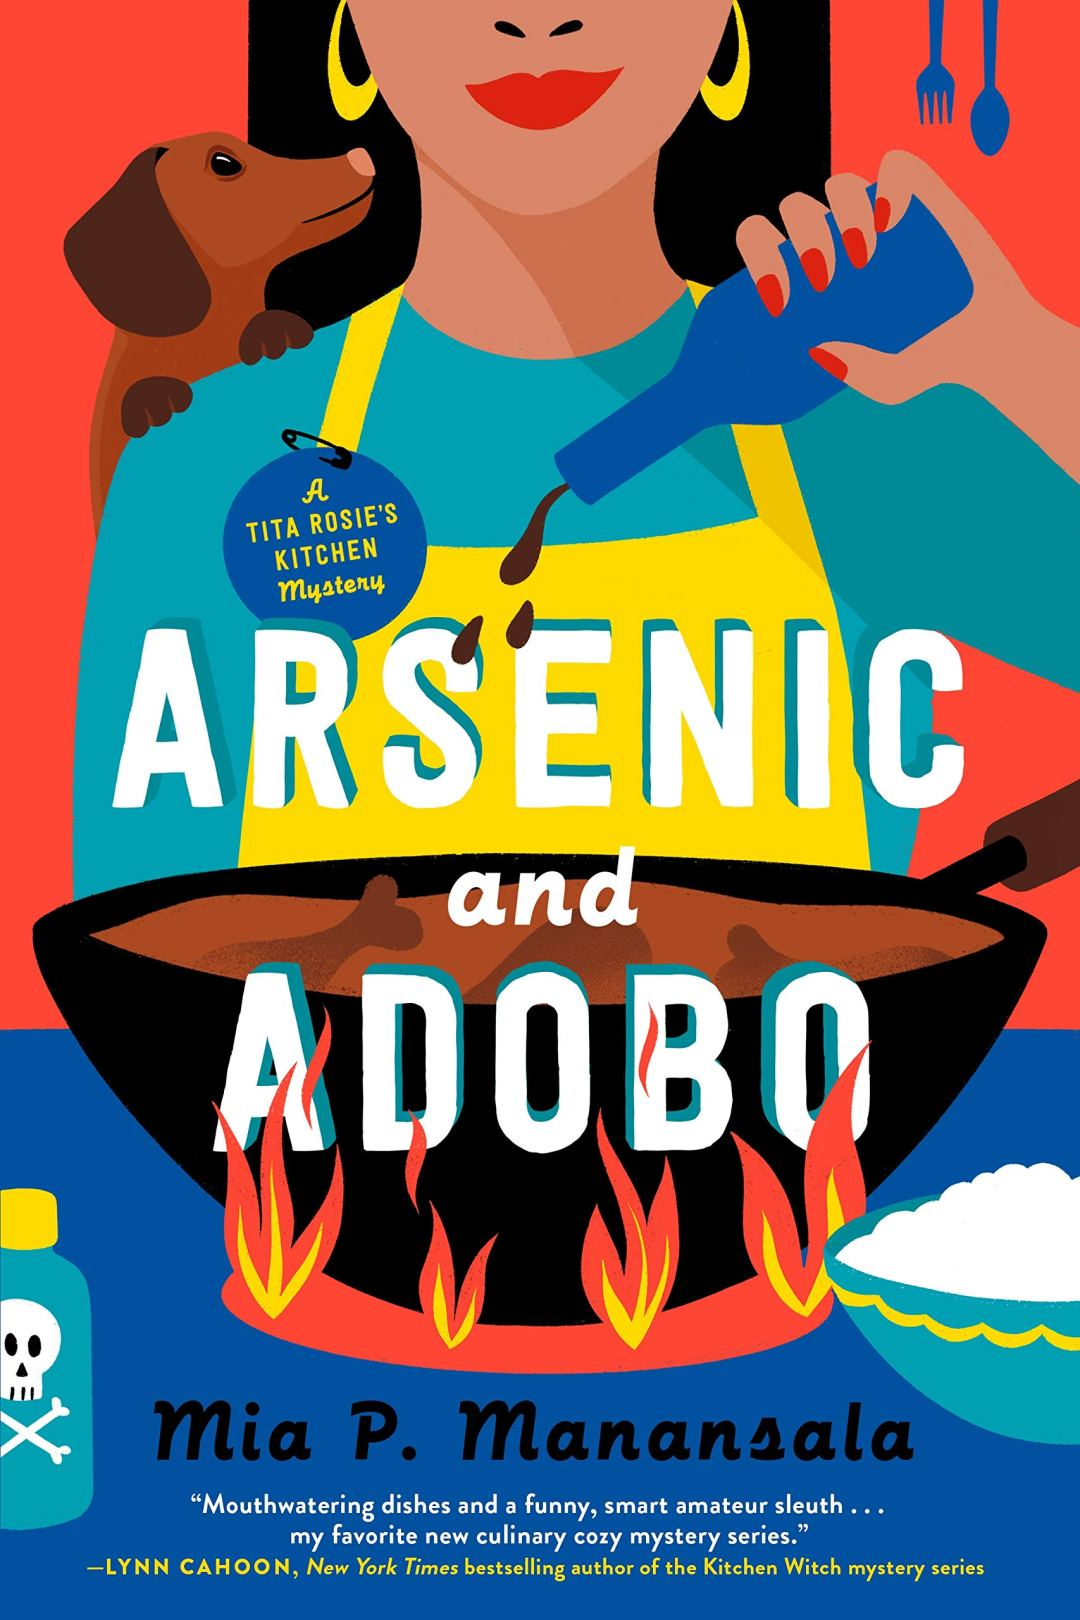 ARSENIC AND ADOBO: A Chat with Mia P. Manansala